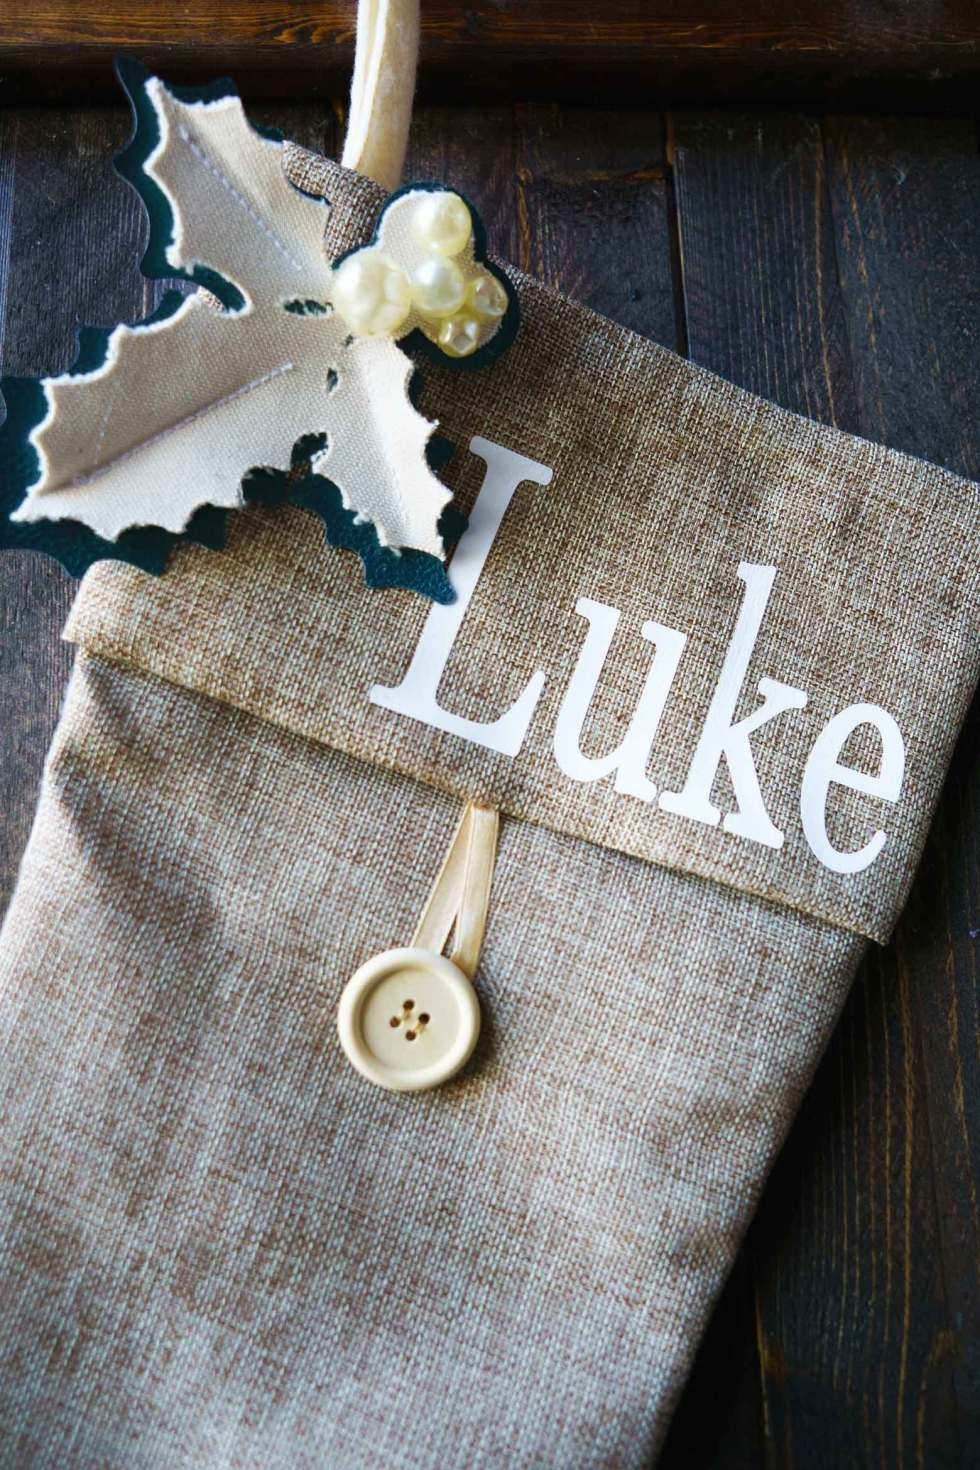 Level up a store bought stocking with homemade holly from leather and canvas on a Cricut machine. Add fonts to make it a personalized Christmas stocking!Level up a store bought stocking with homemade holly from leather and canvas on a Cricut machine. Add fonts to make it a personalized Christmas stocking!